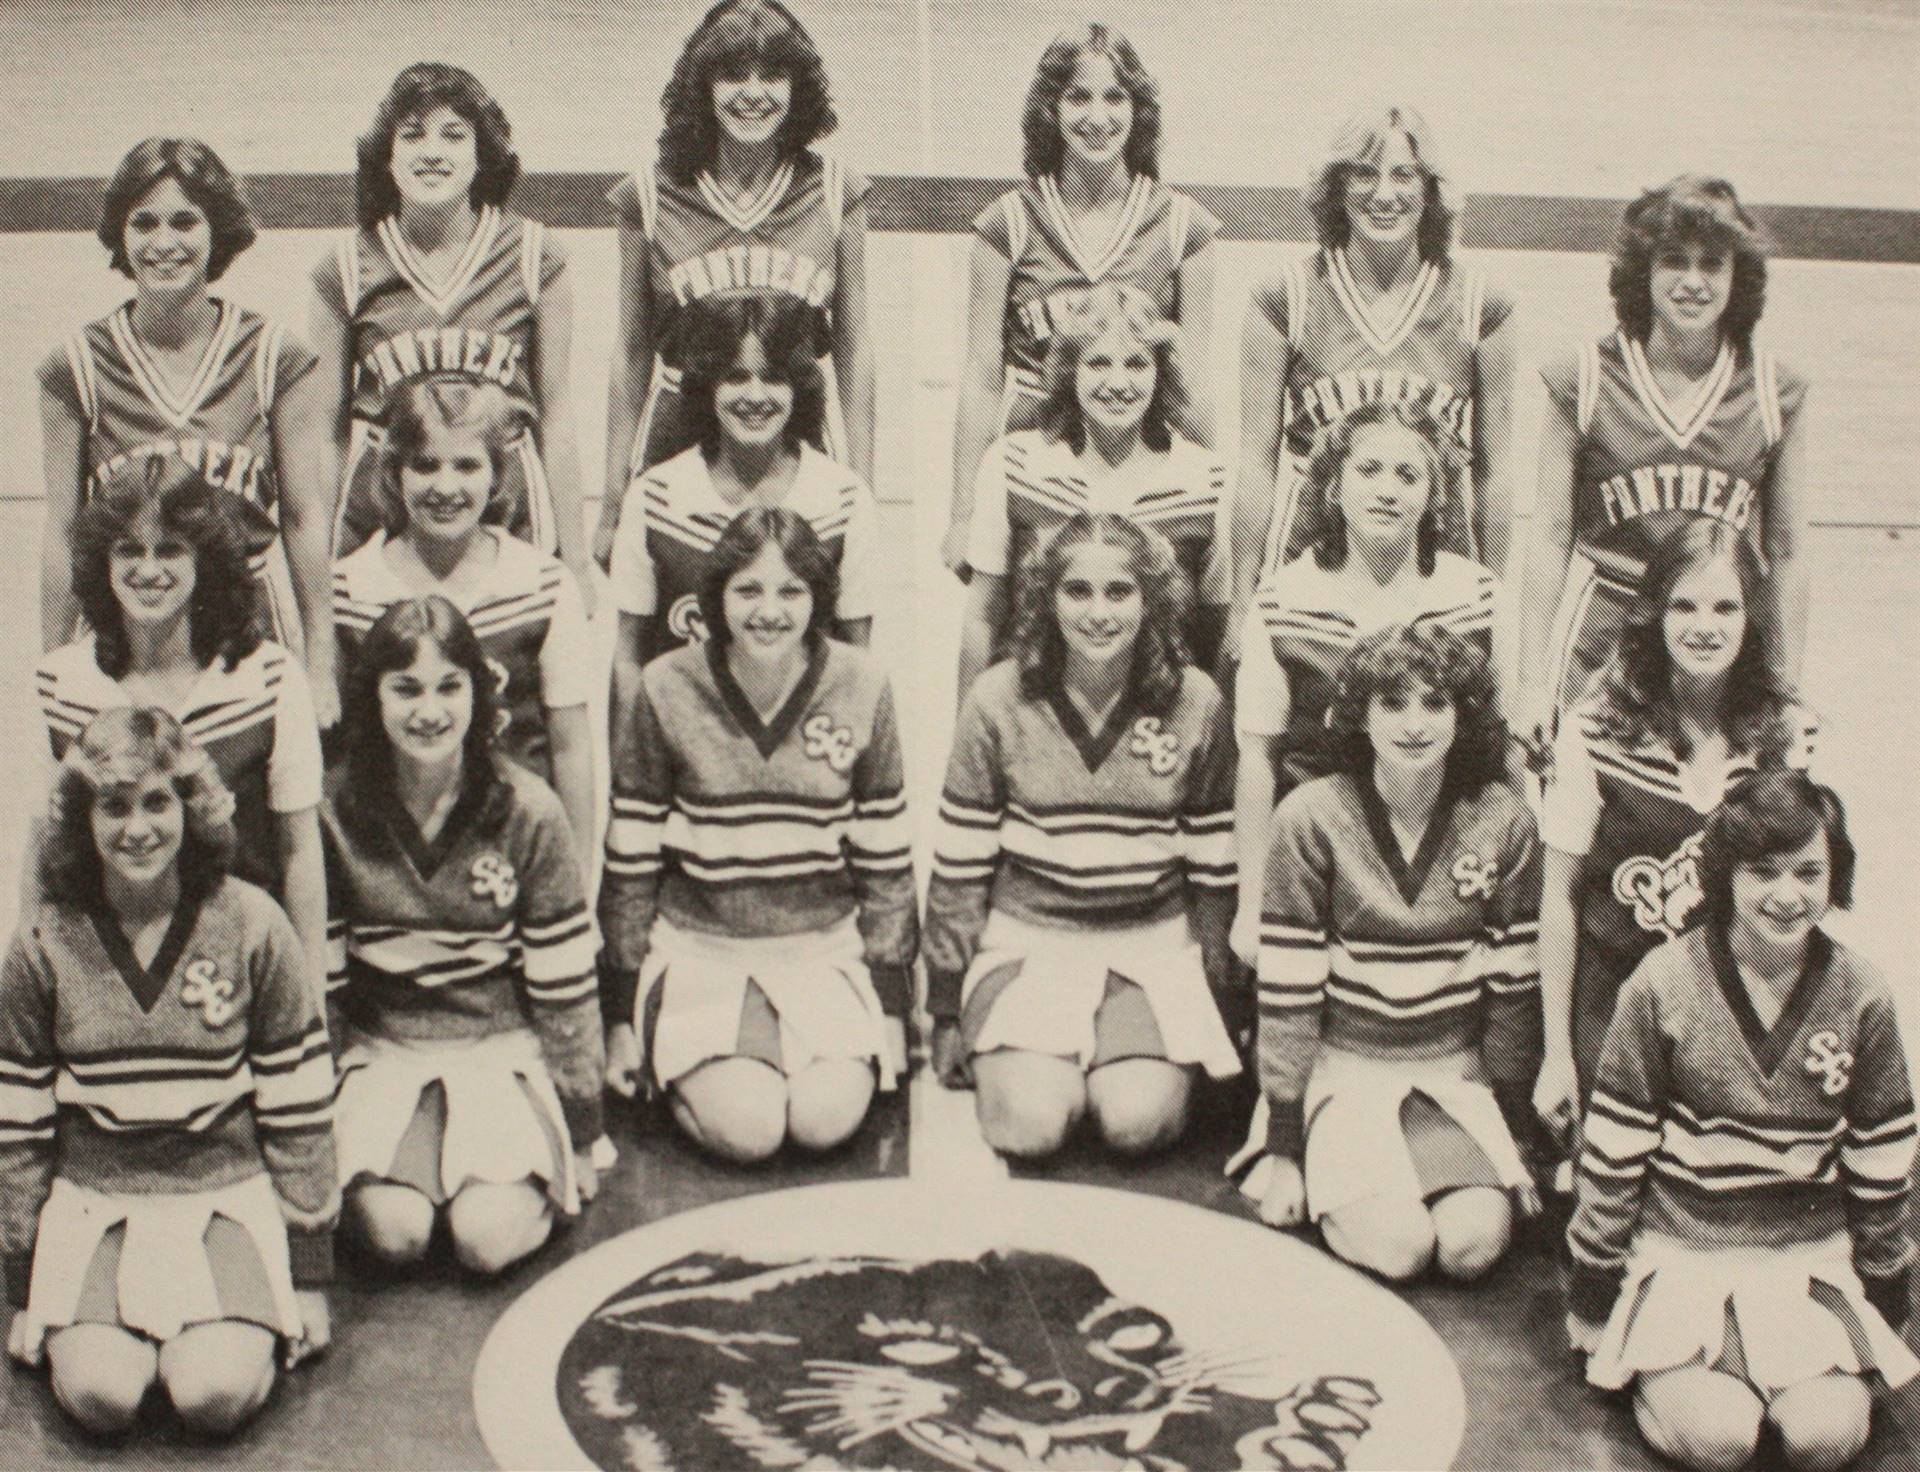 1981 Cheerleaders